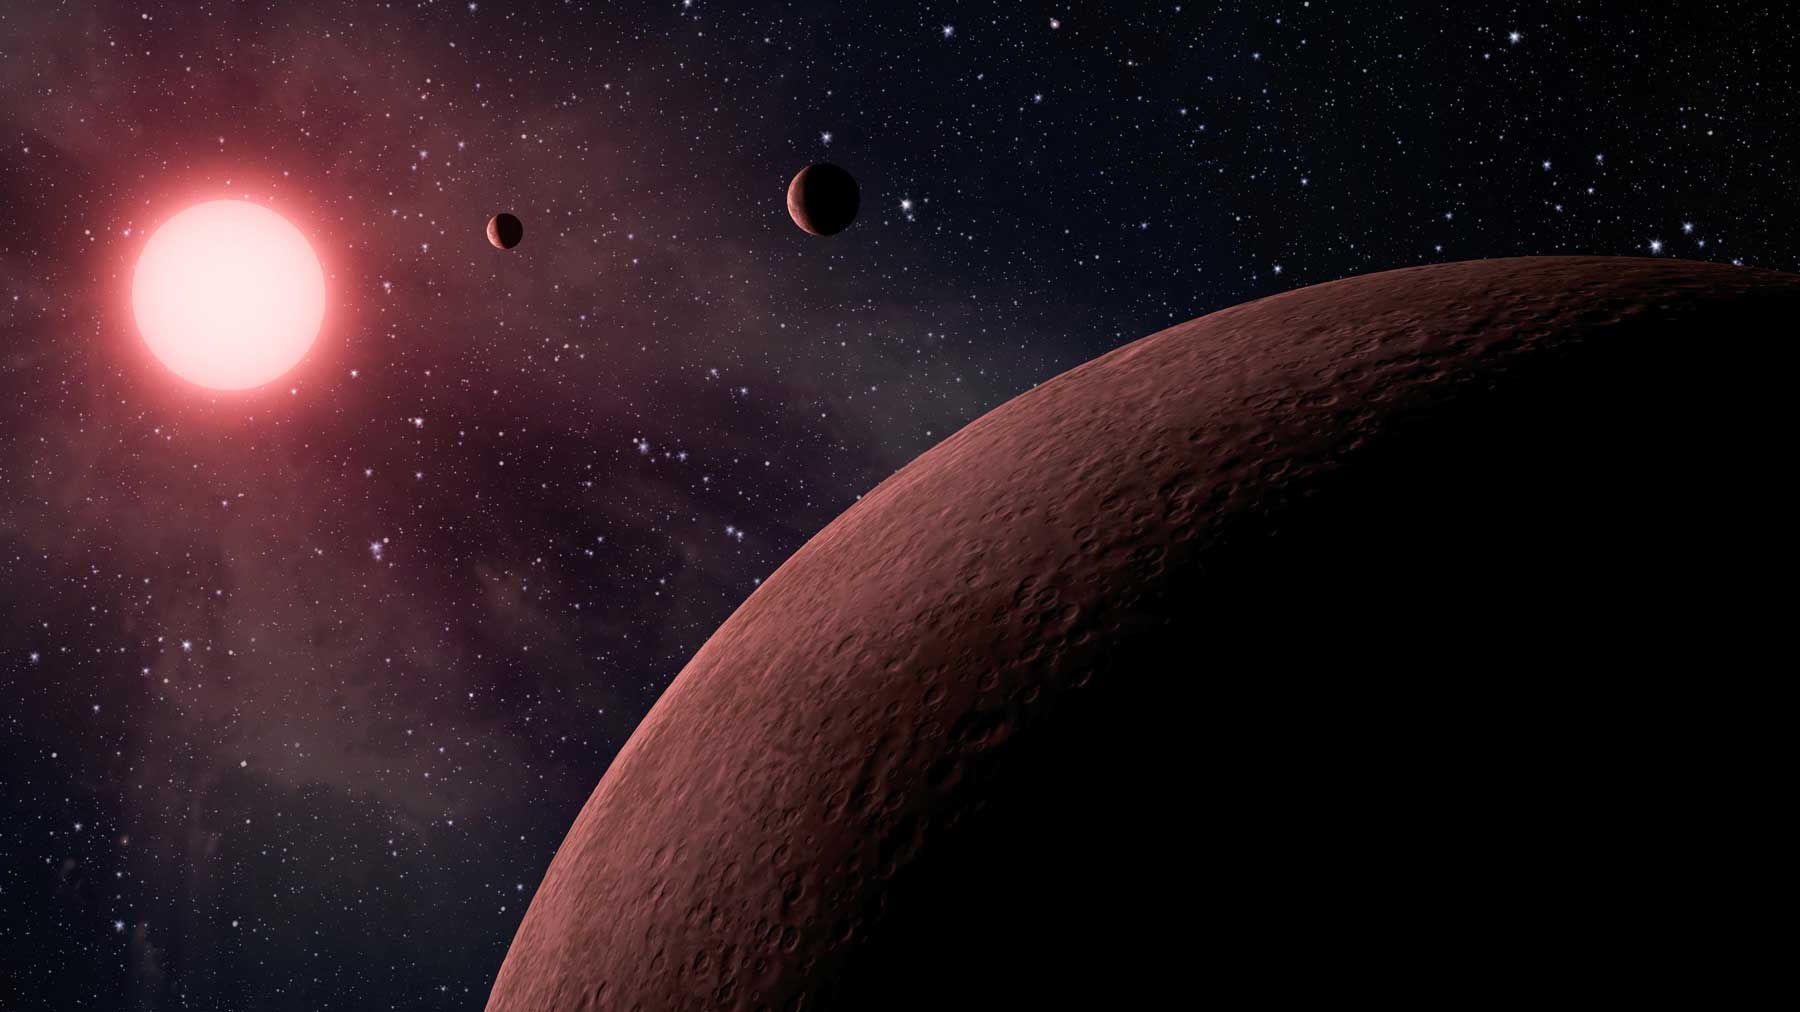 NASA's Kepler space telescope team has identified 219 new planet candidates, 10 of which are near-Earth size and in the habitable zone of their star. (NASA/JPL-Caltech)